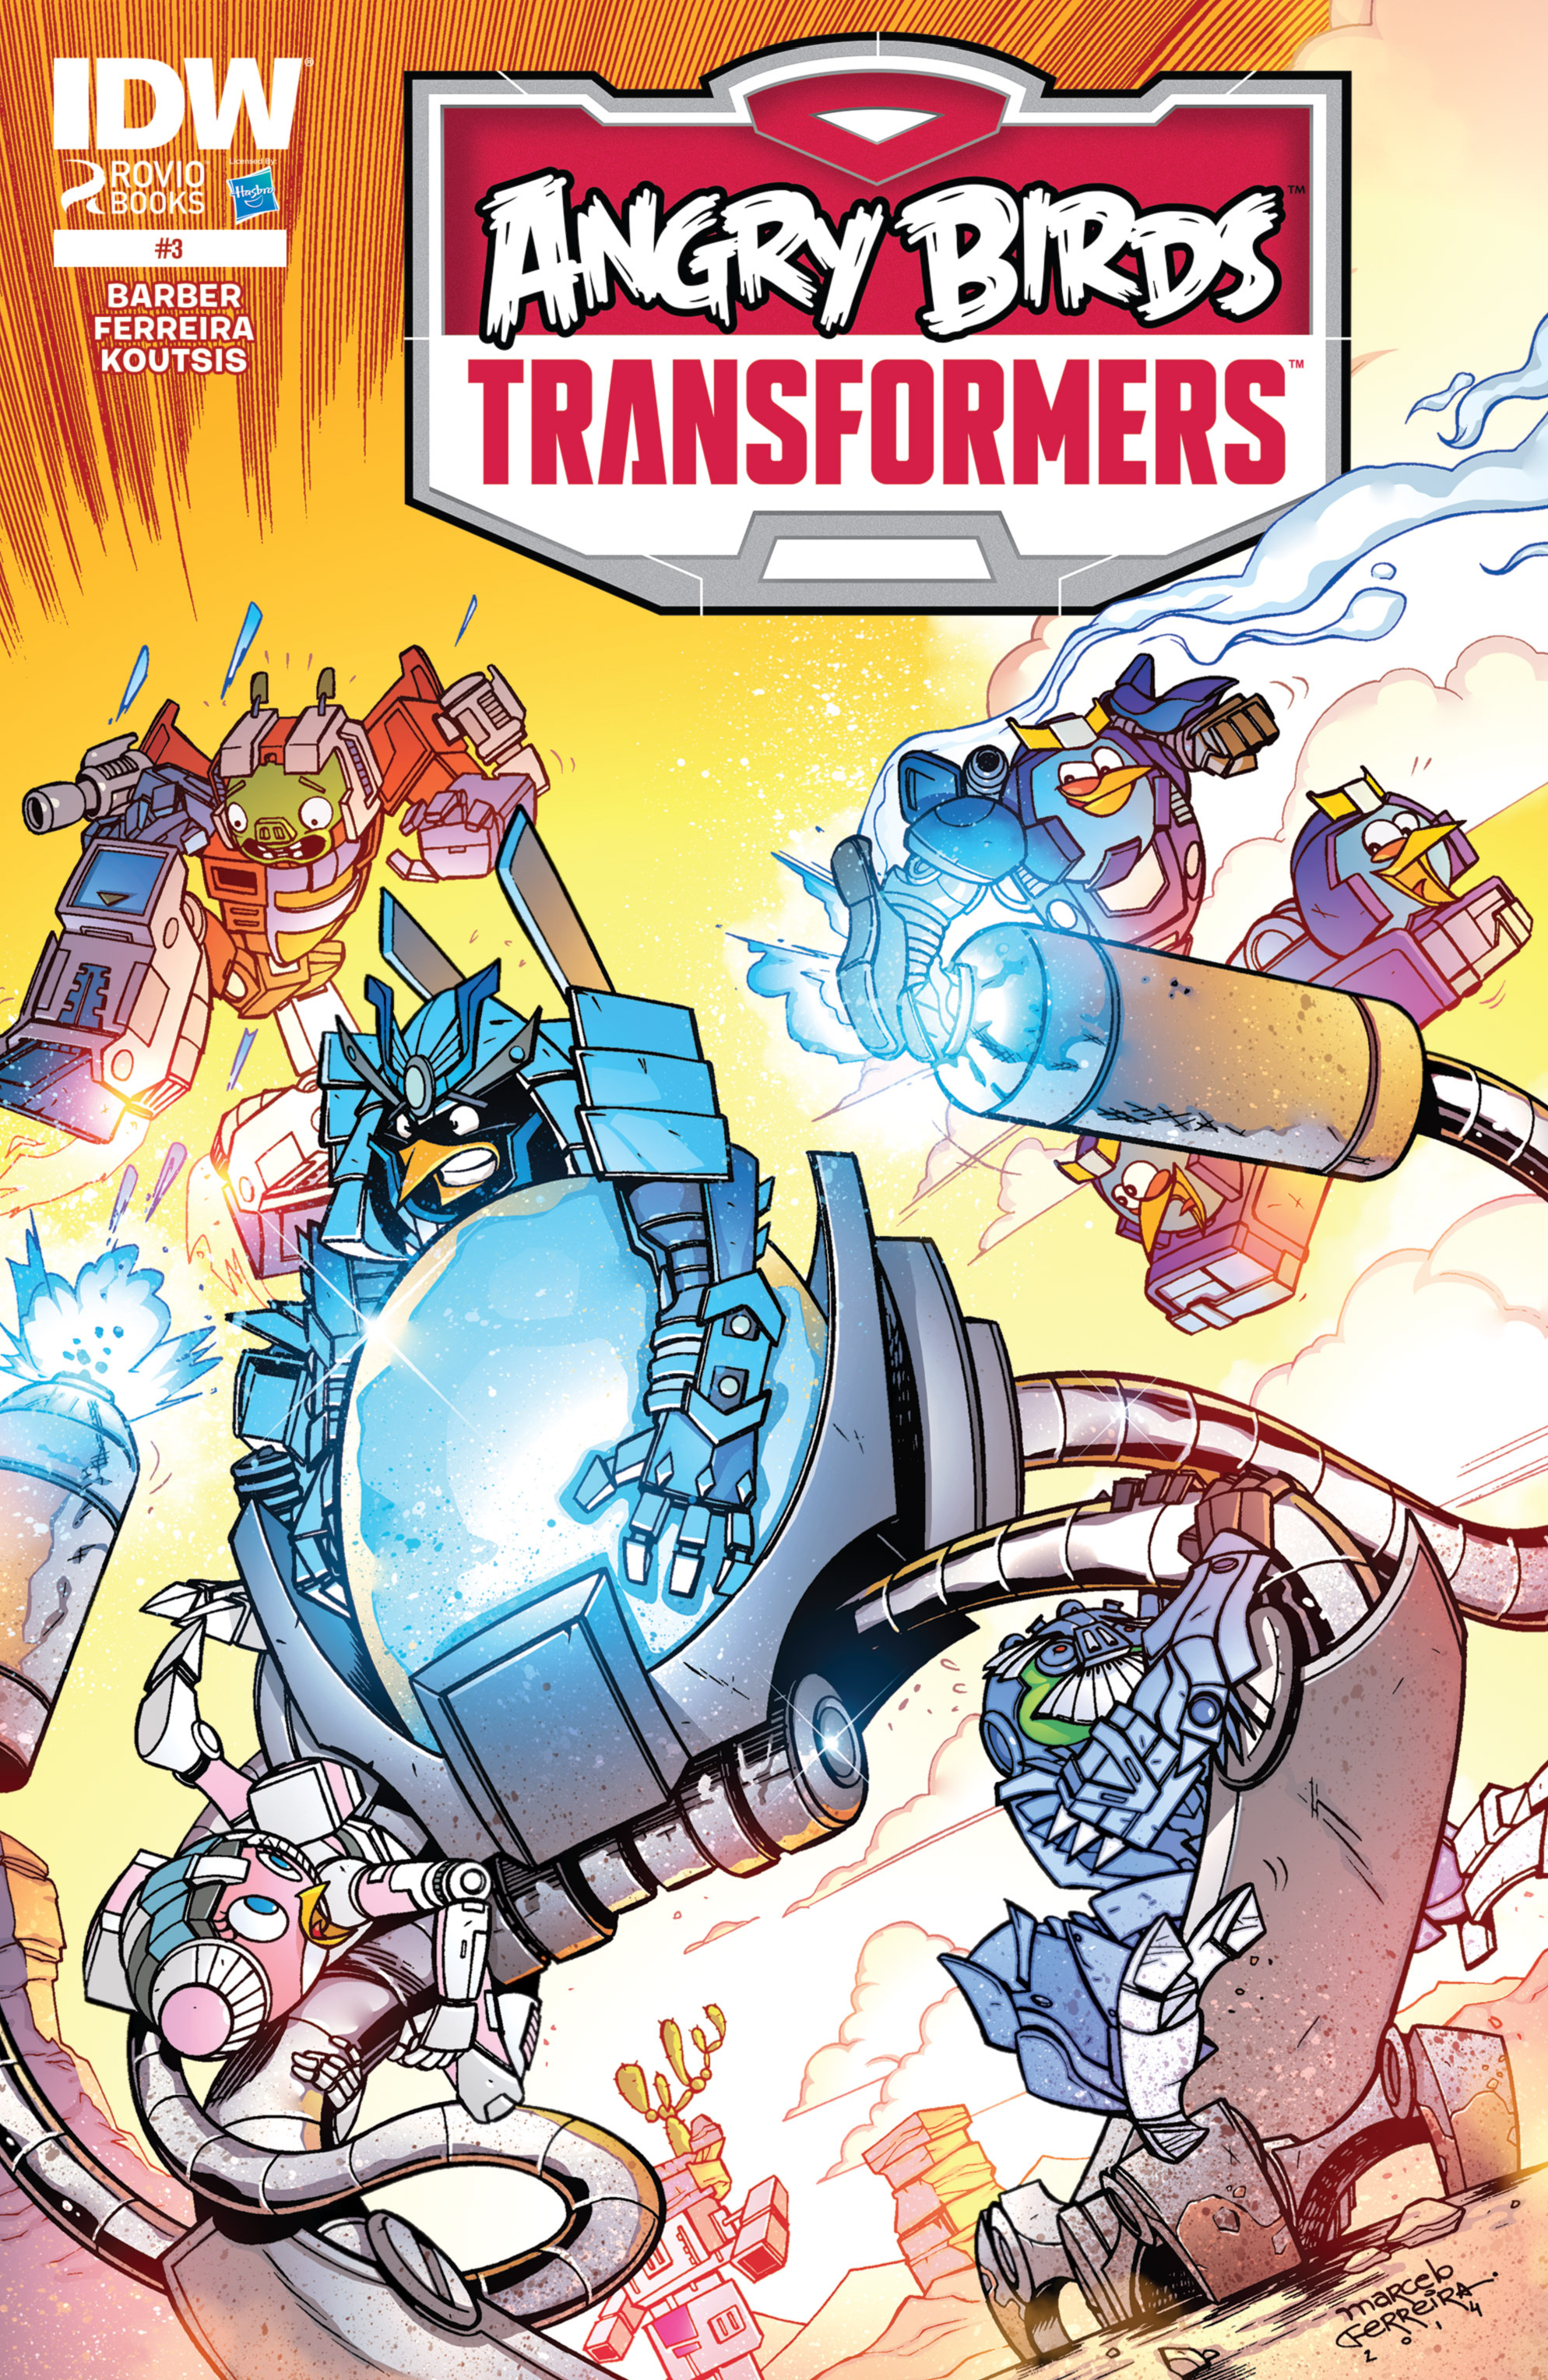 Read online Angry Birds Transformers comic -  Issue #3 - 1